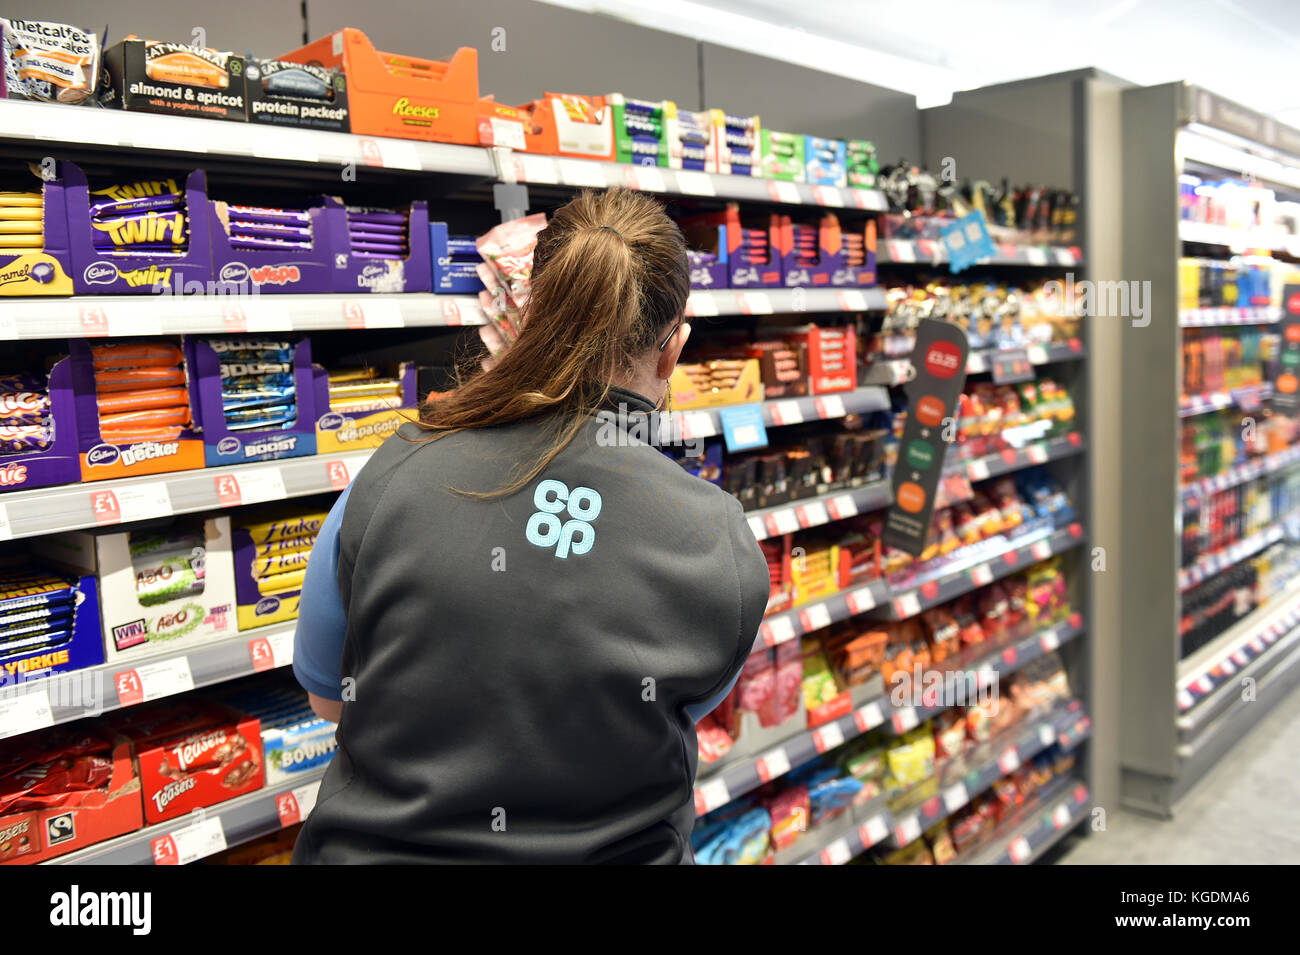 Shelf stacking in a Co-operative food store, back view of a staff member stacking chocolate on a shelf. - Stock Image